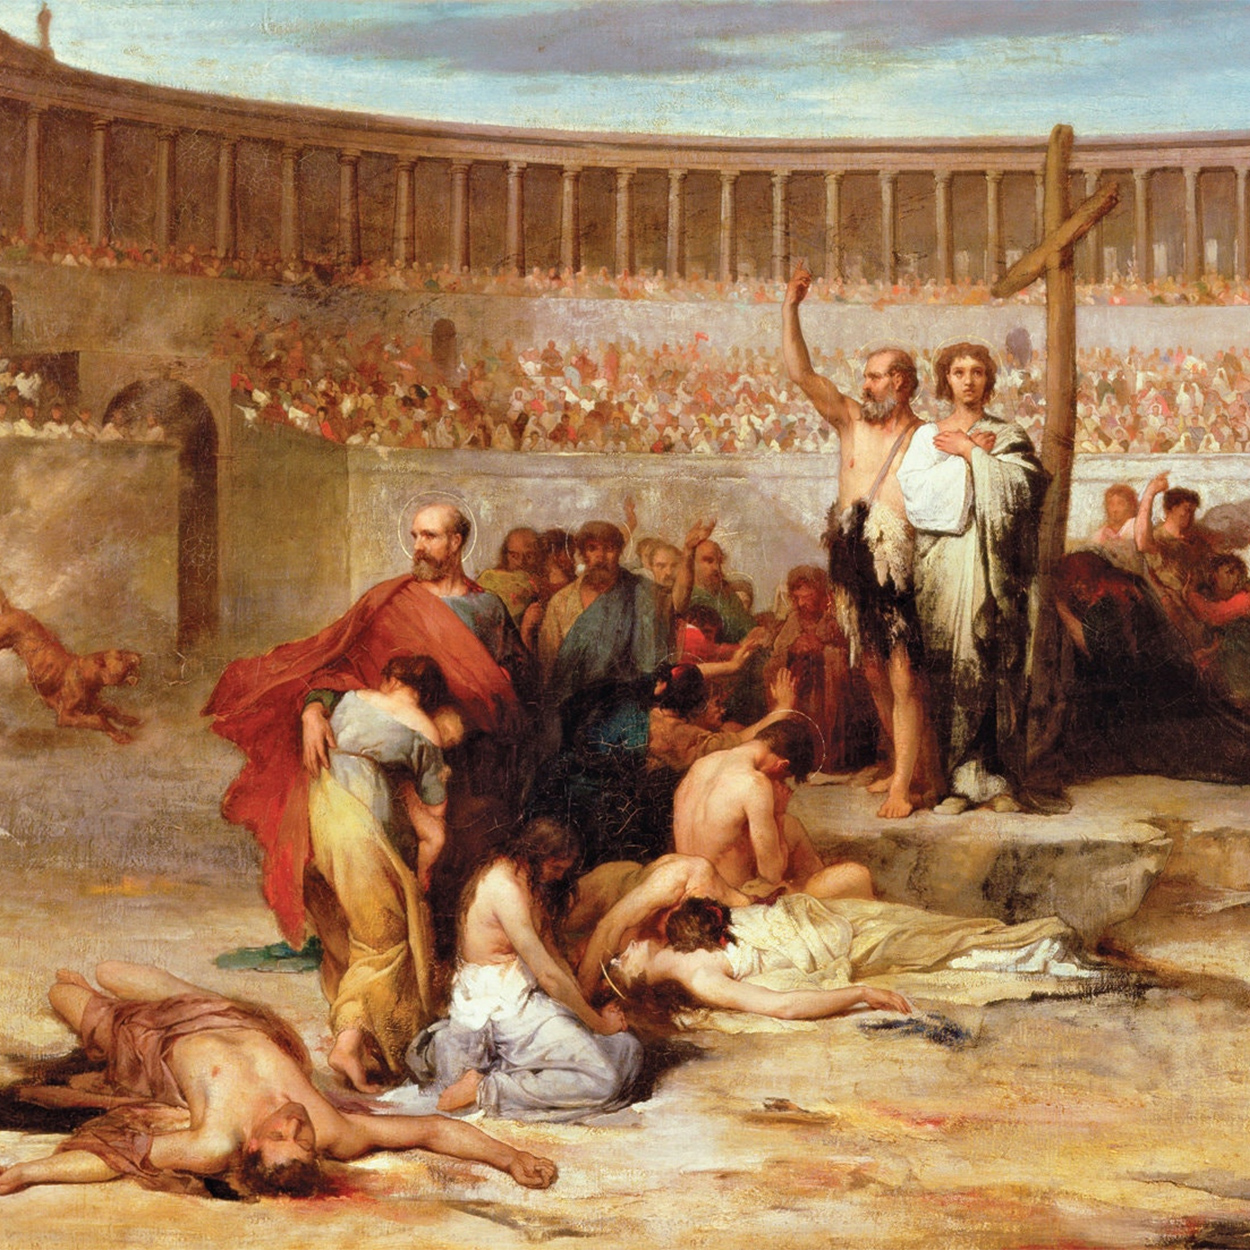 Our Return to the Persecution of the pre-Christian World